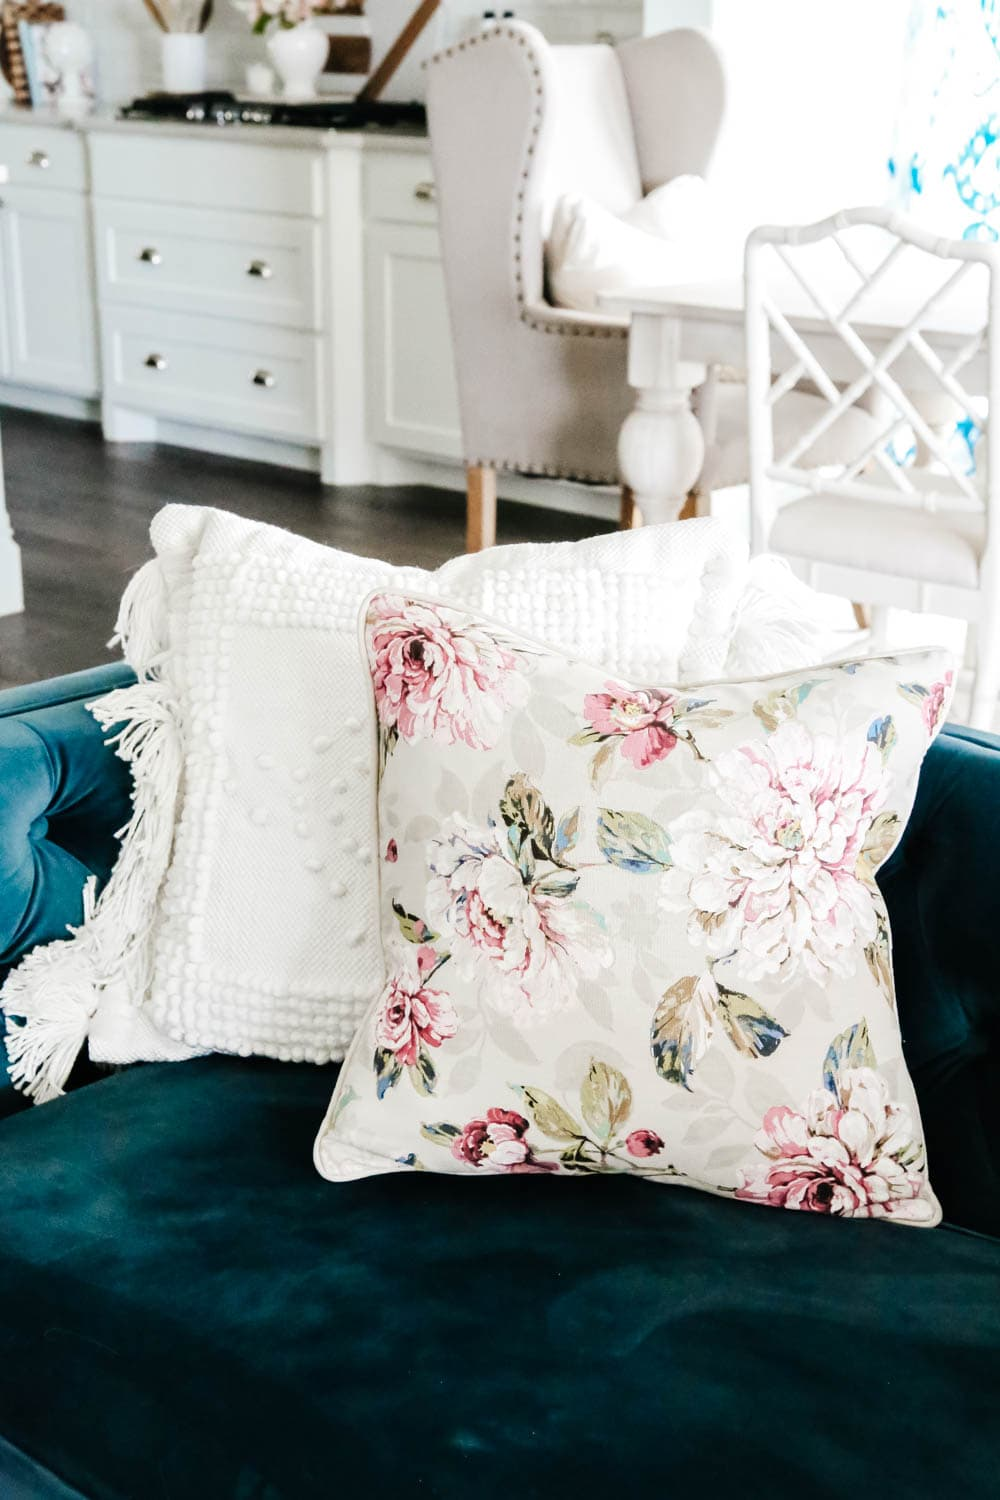 Pillow patterns for spring or summer. Lots of texture mixed with a sophisticated floral. #pillowstyling #pillow #livingroominspo #hometour #ABlissfulNest